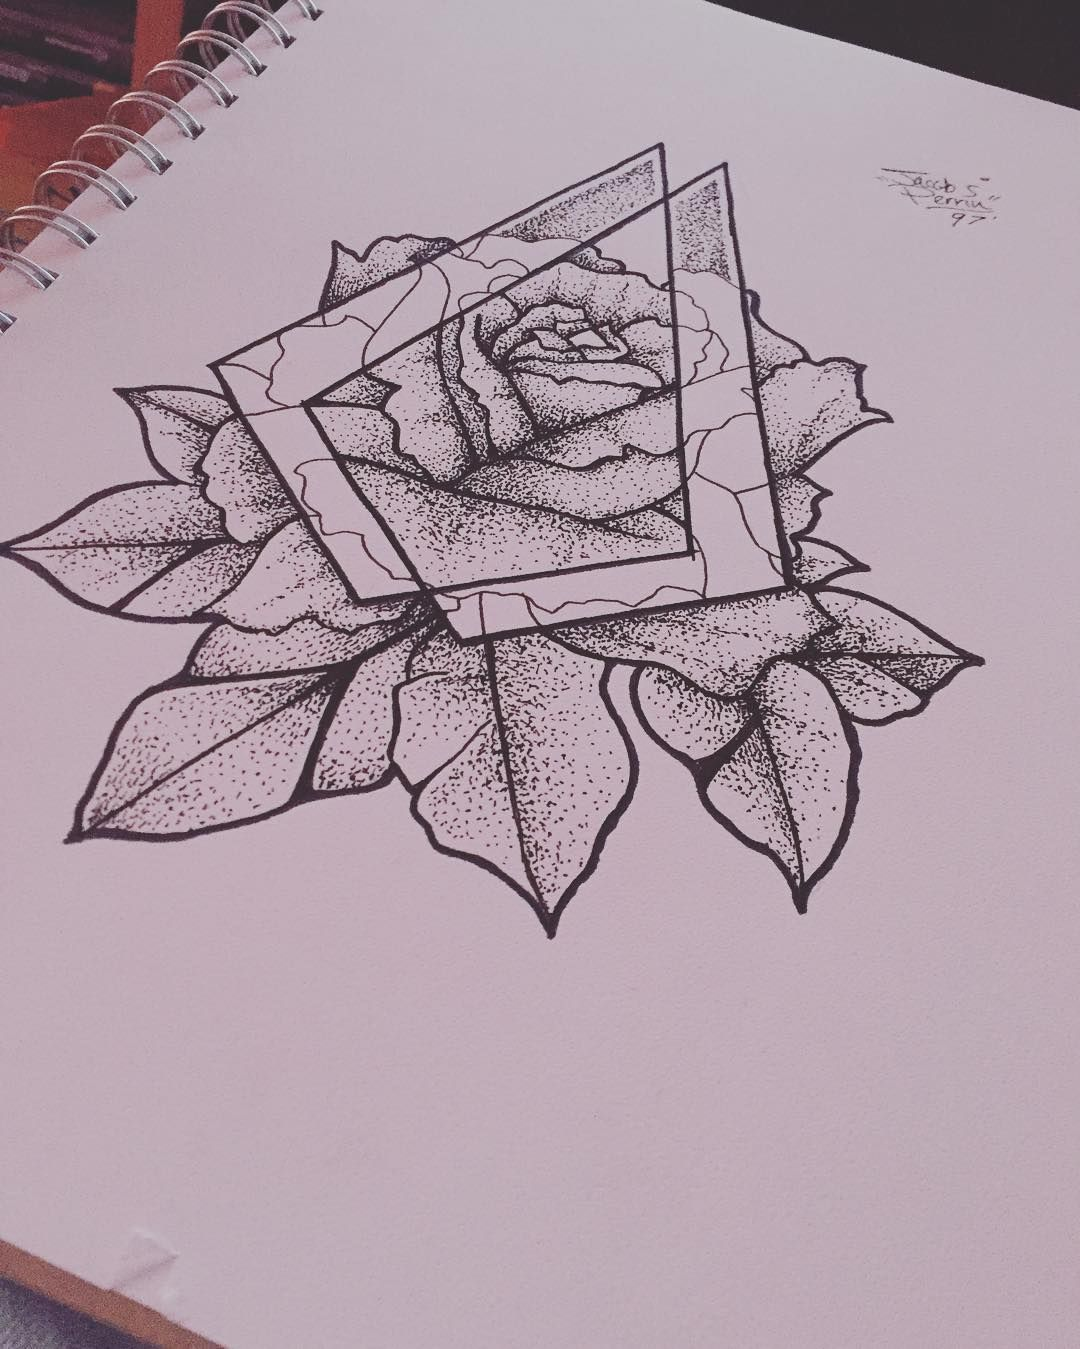 Fresh WTFDotworkTattoo Find Fresh from the Web 7:55PM// Next Tattoo Drawn. #Dotwork #Drawing #Tattoo #Geometric #Floral #Art perrinmate WTFDotWorkTattoo